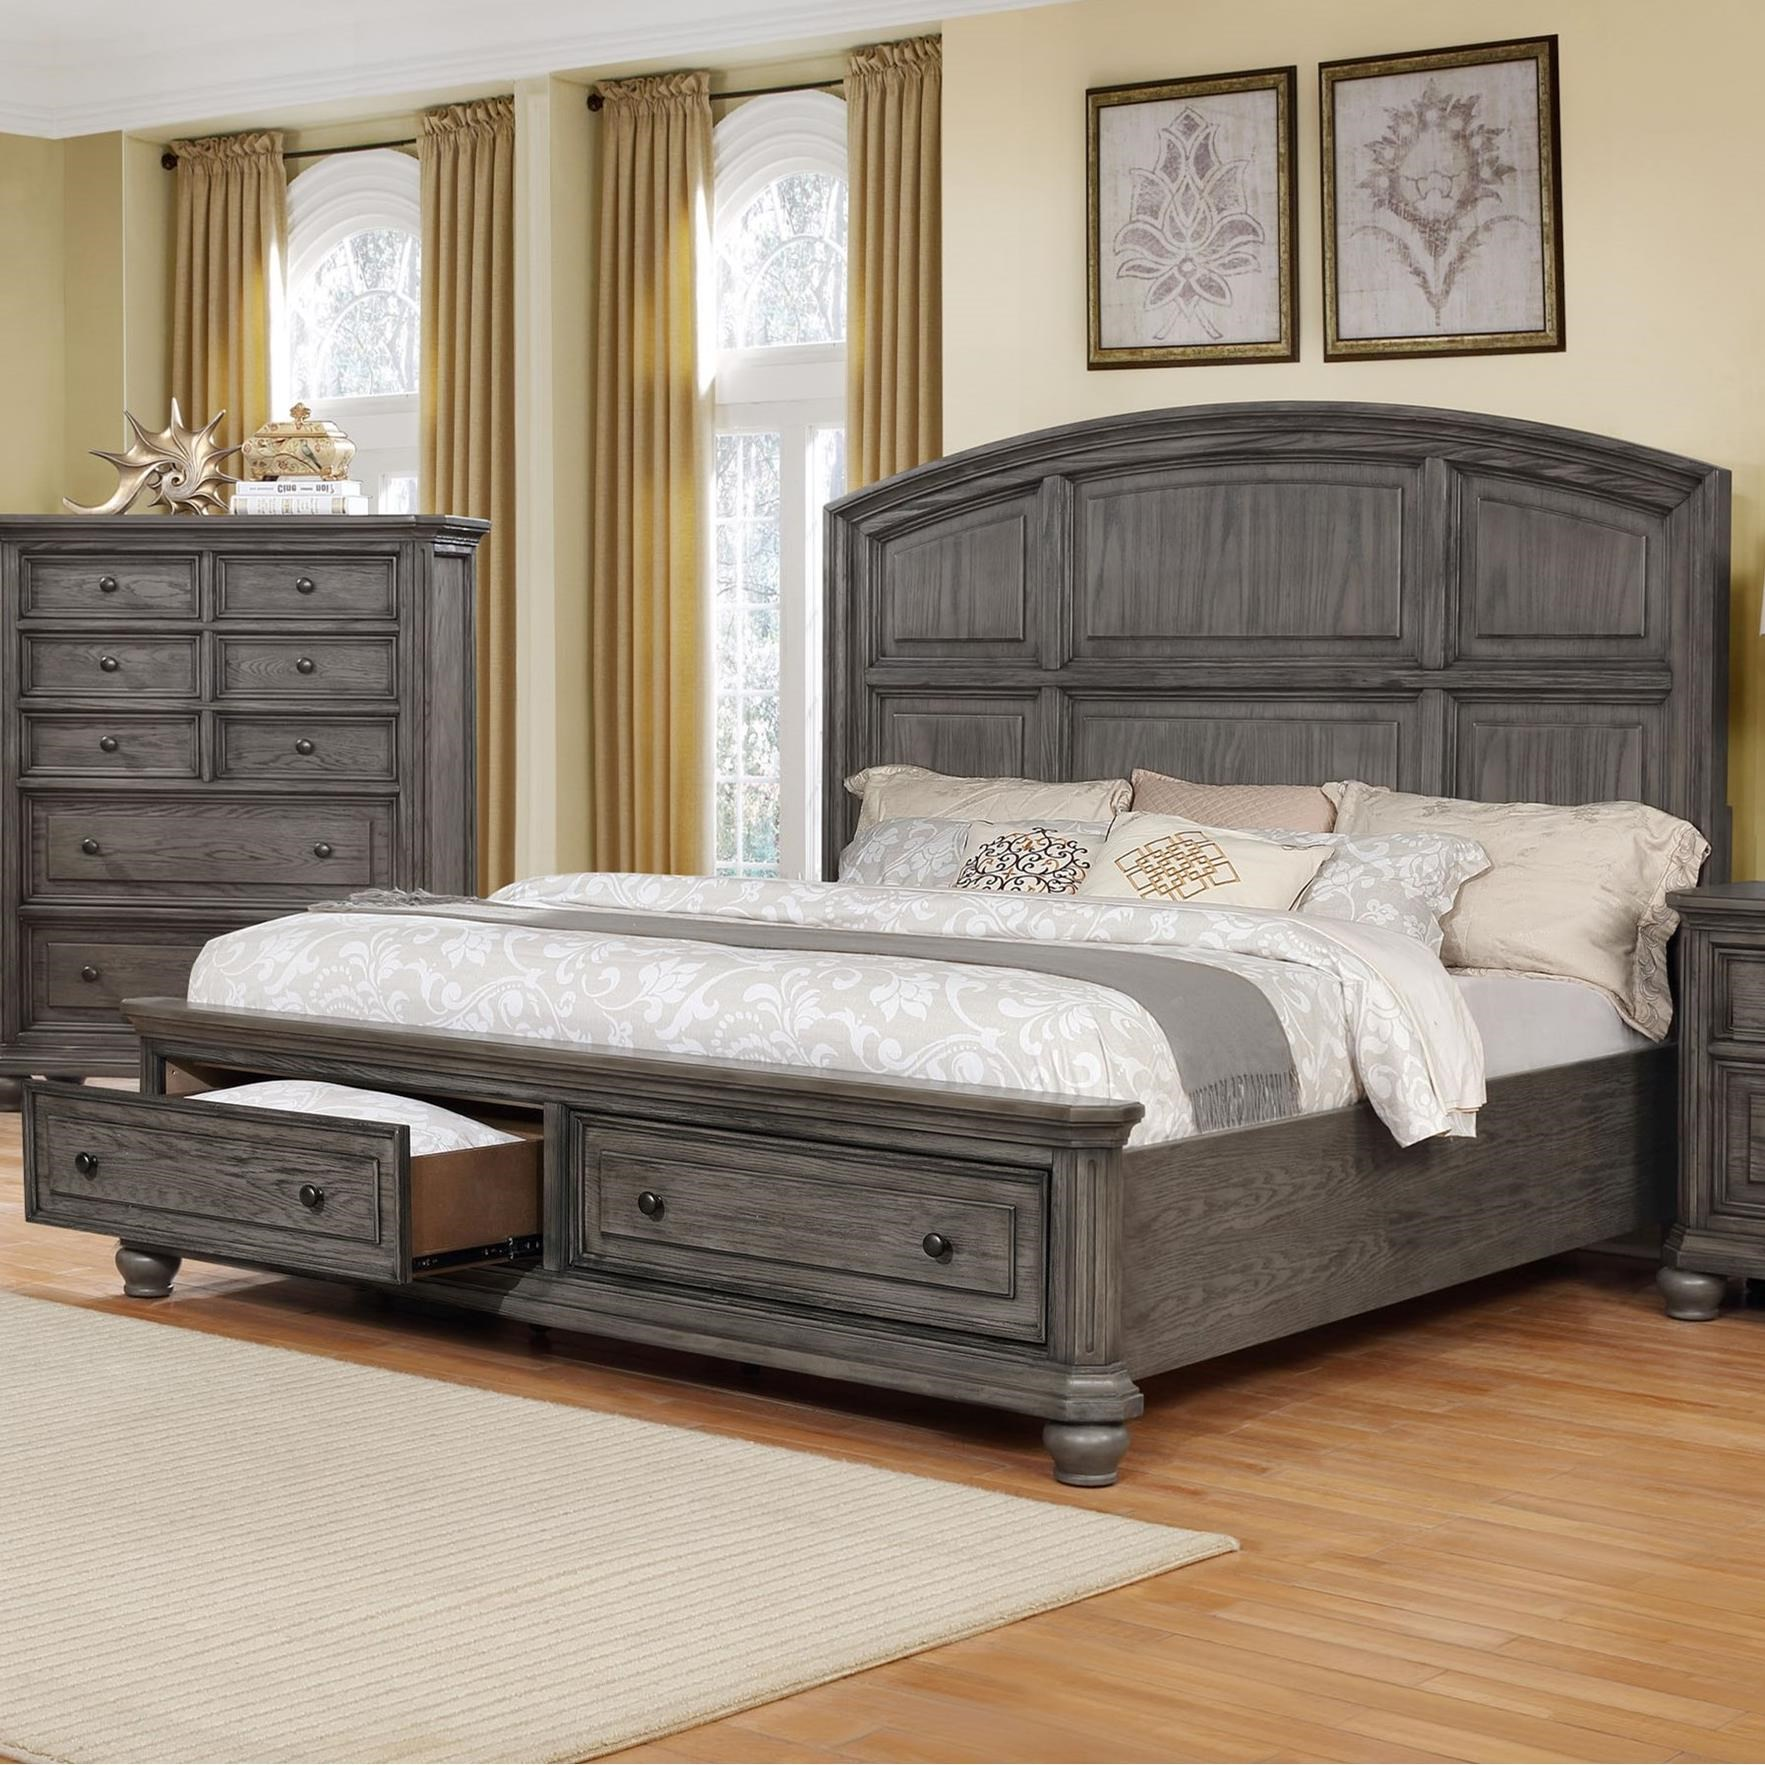 Crown Mark Lavonia Relaxed Vintage Queen Bed With Footboard Storage Royal Furniture Panel Beds